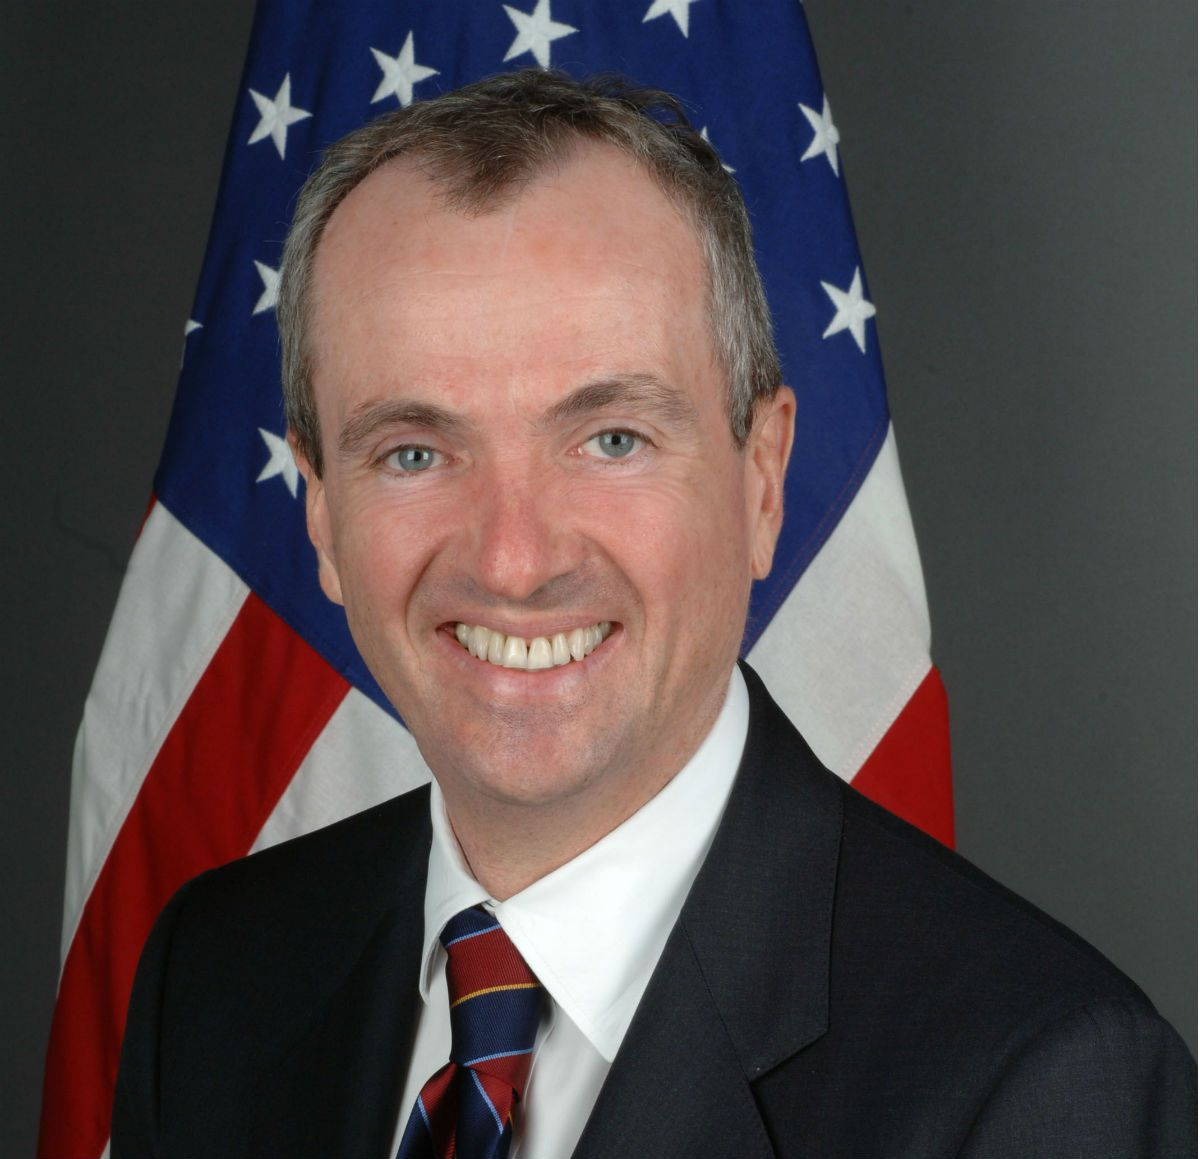 The 56th Governor of New Jersey, Phil Murphy